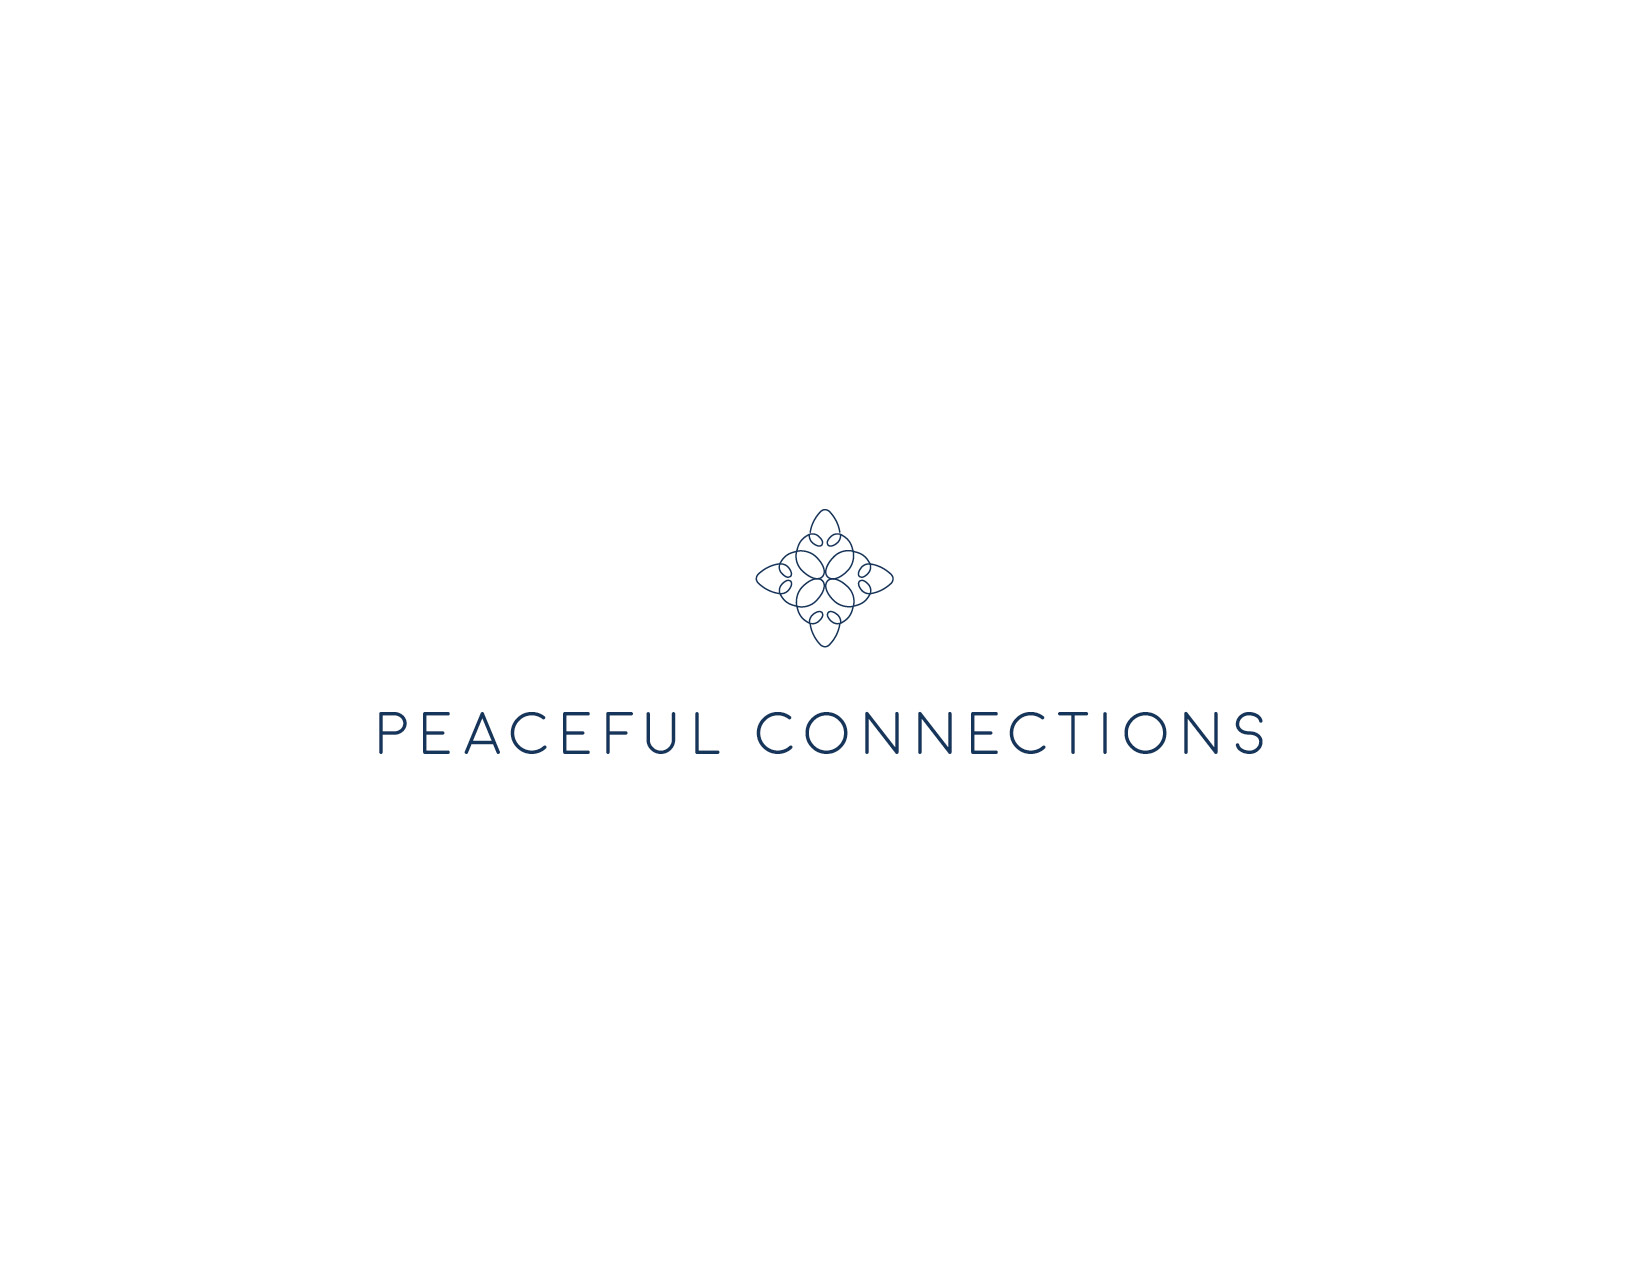 massage therapy branding: Peaceful Connections Logo Design